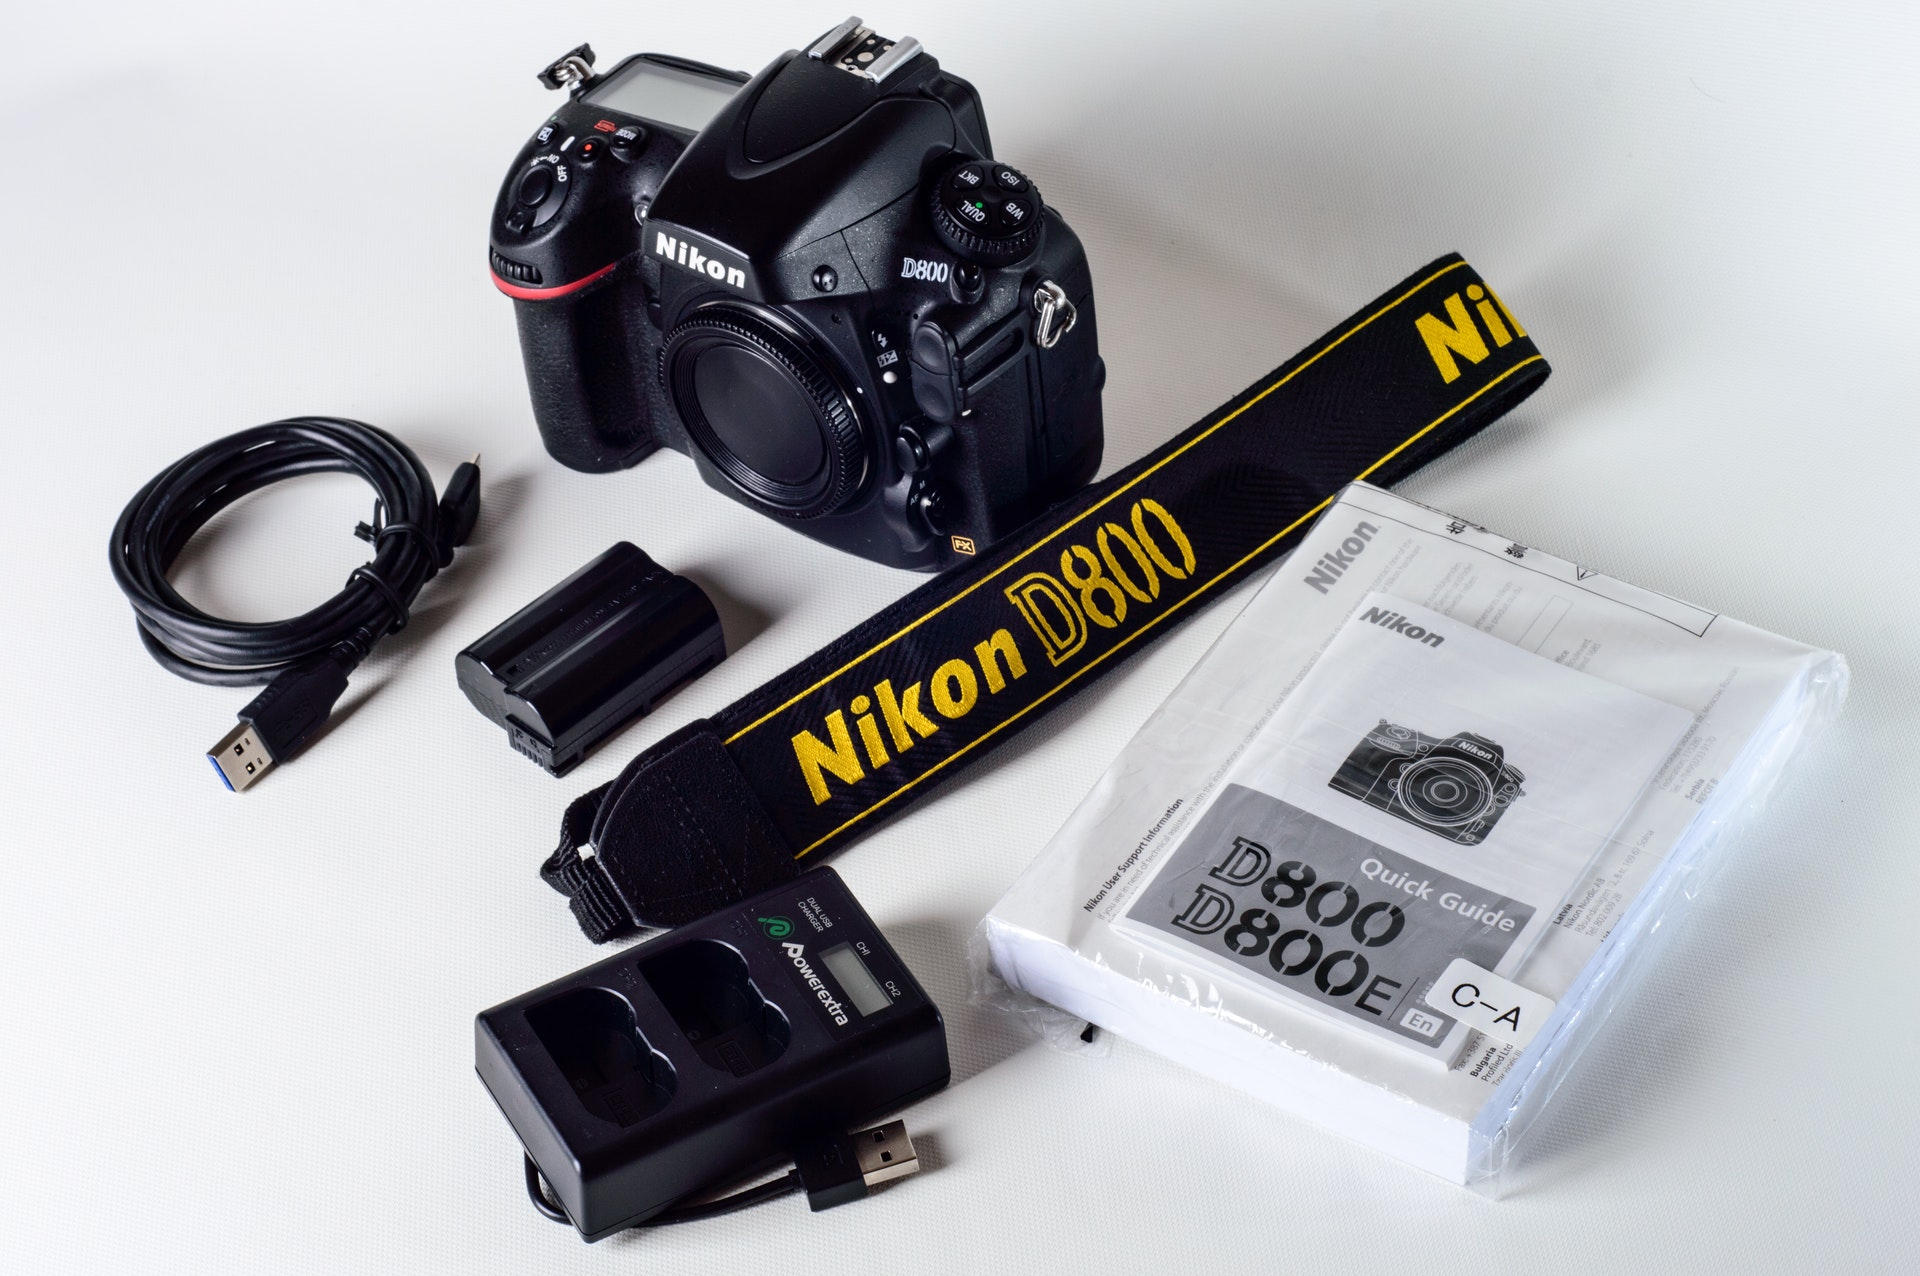 nikon-d800-with-lanyard-and-battery-charger-776907